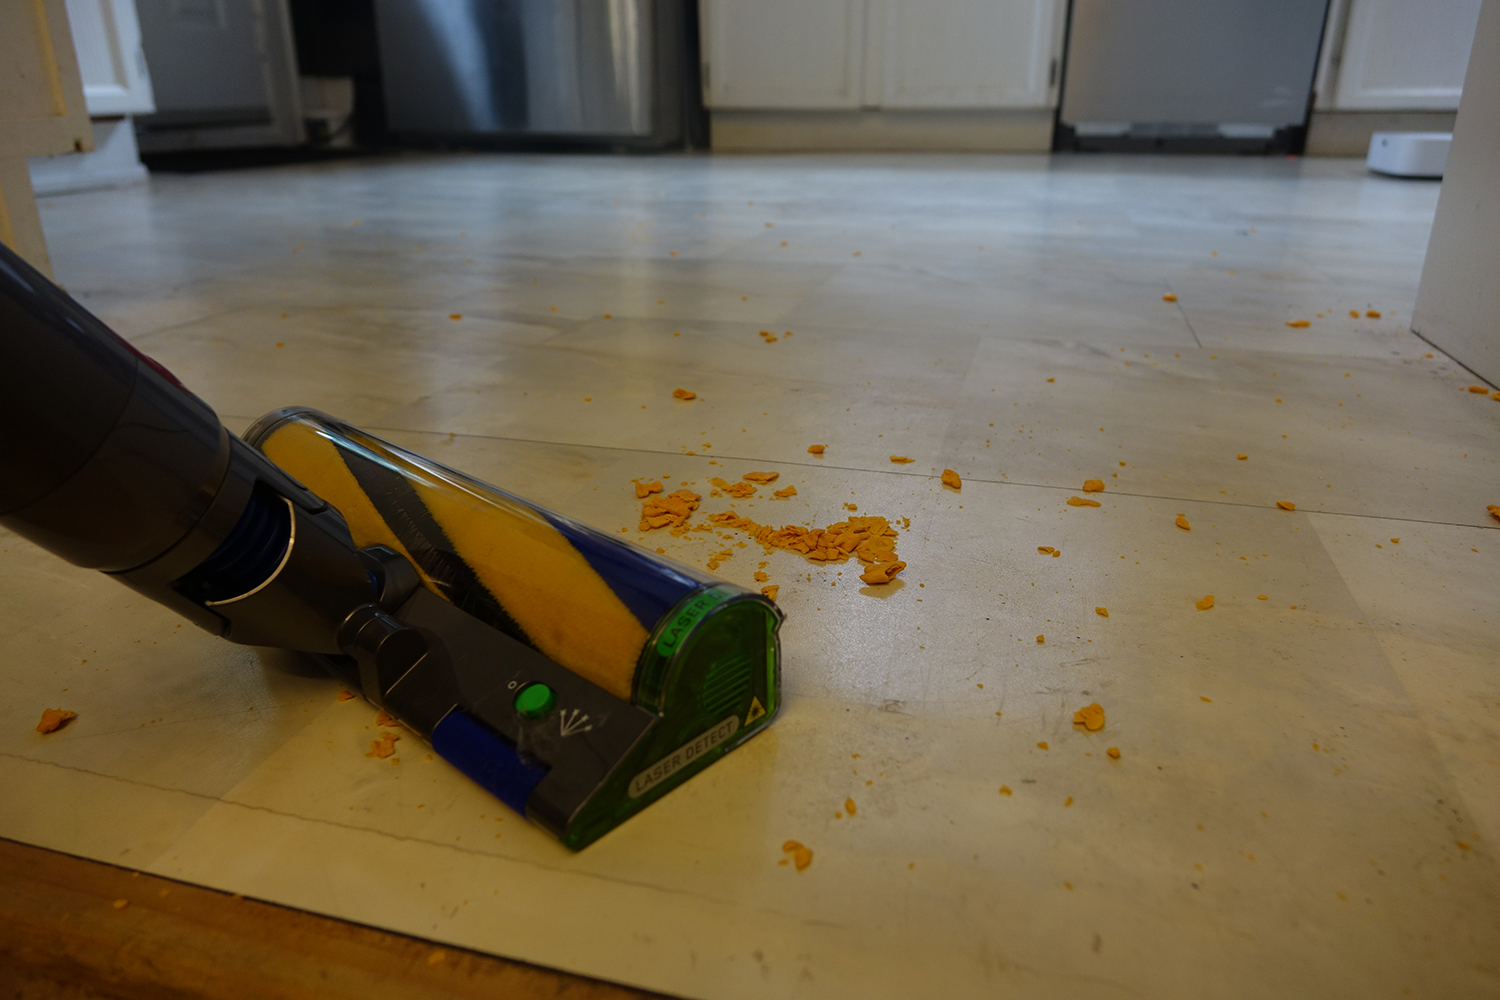 Dyson V15 Detect cleaning crumbs.